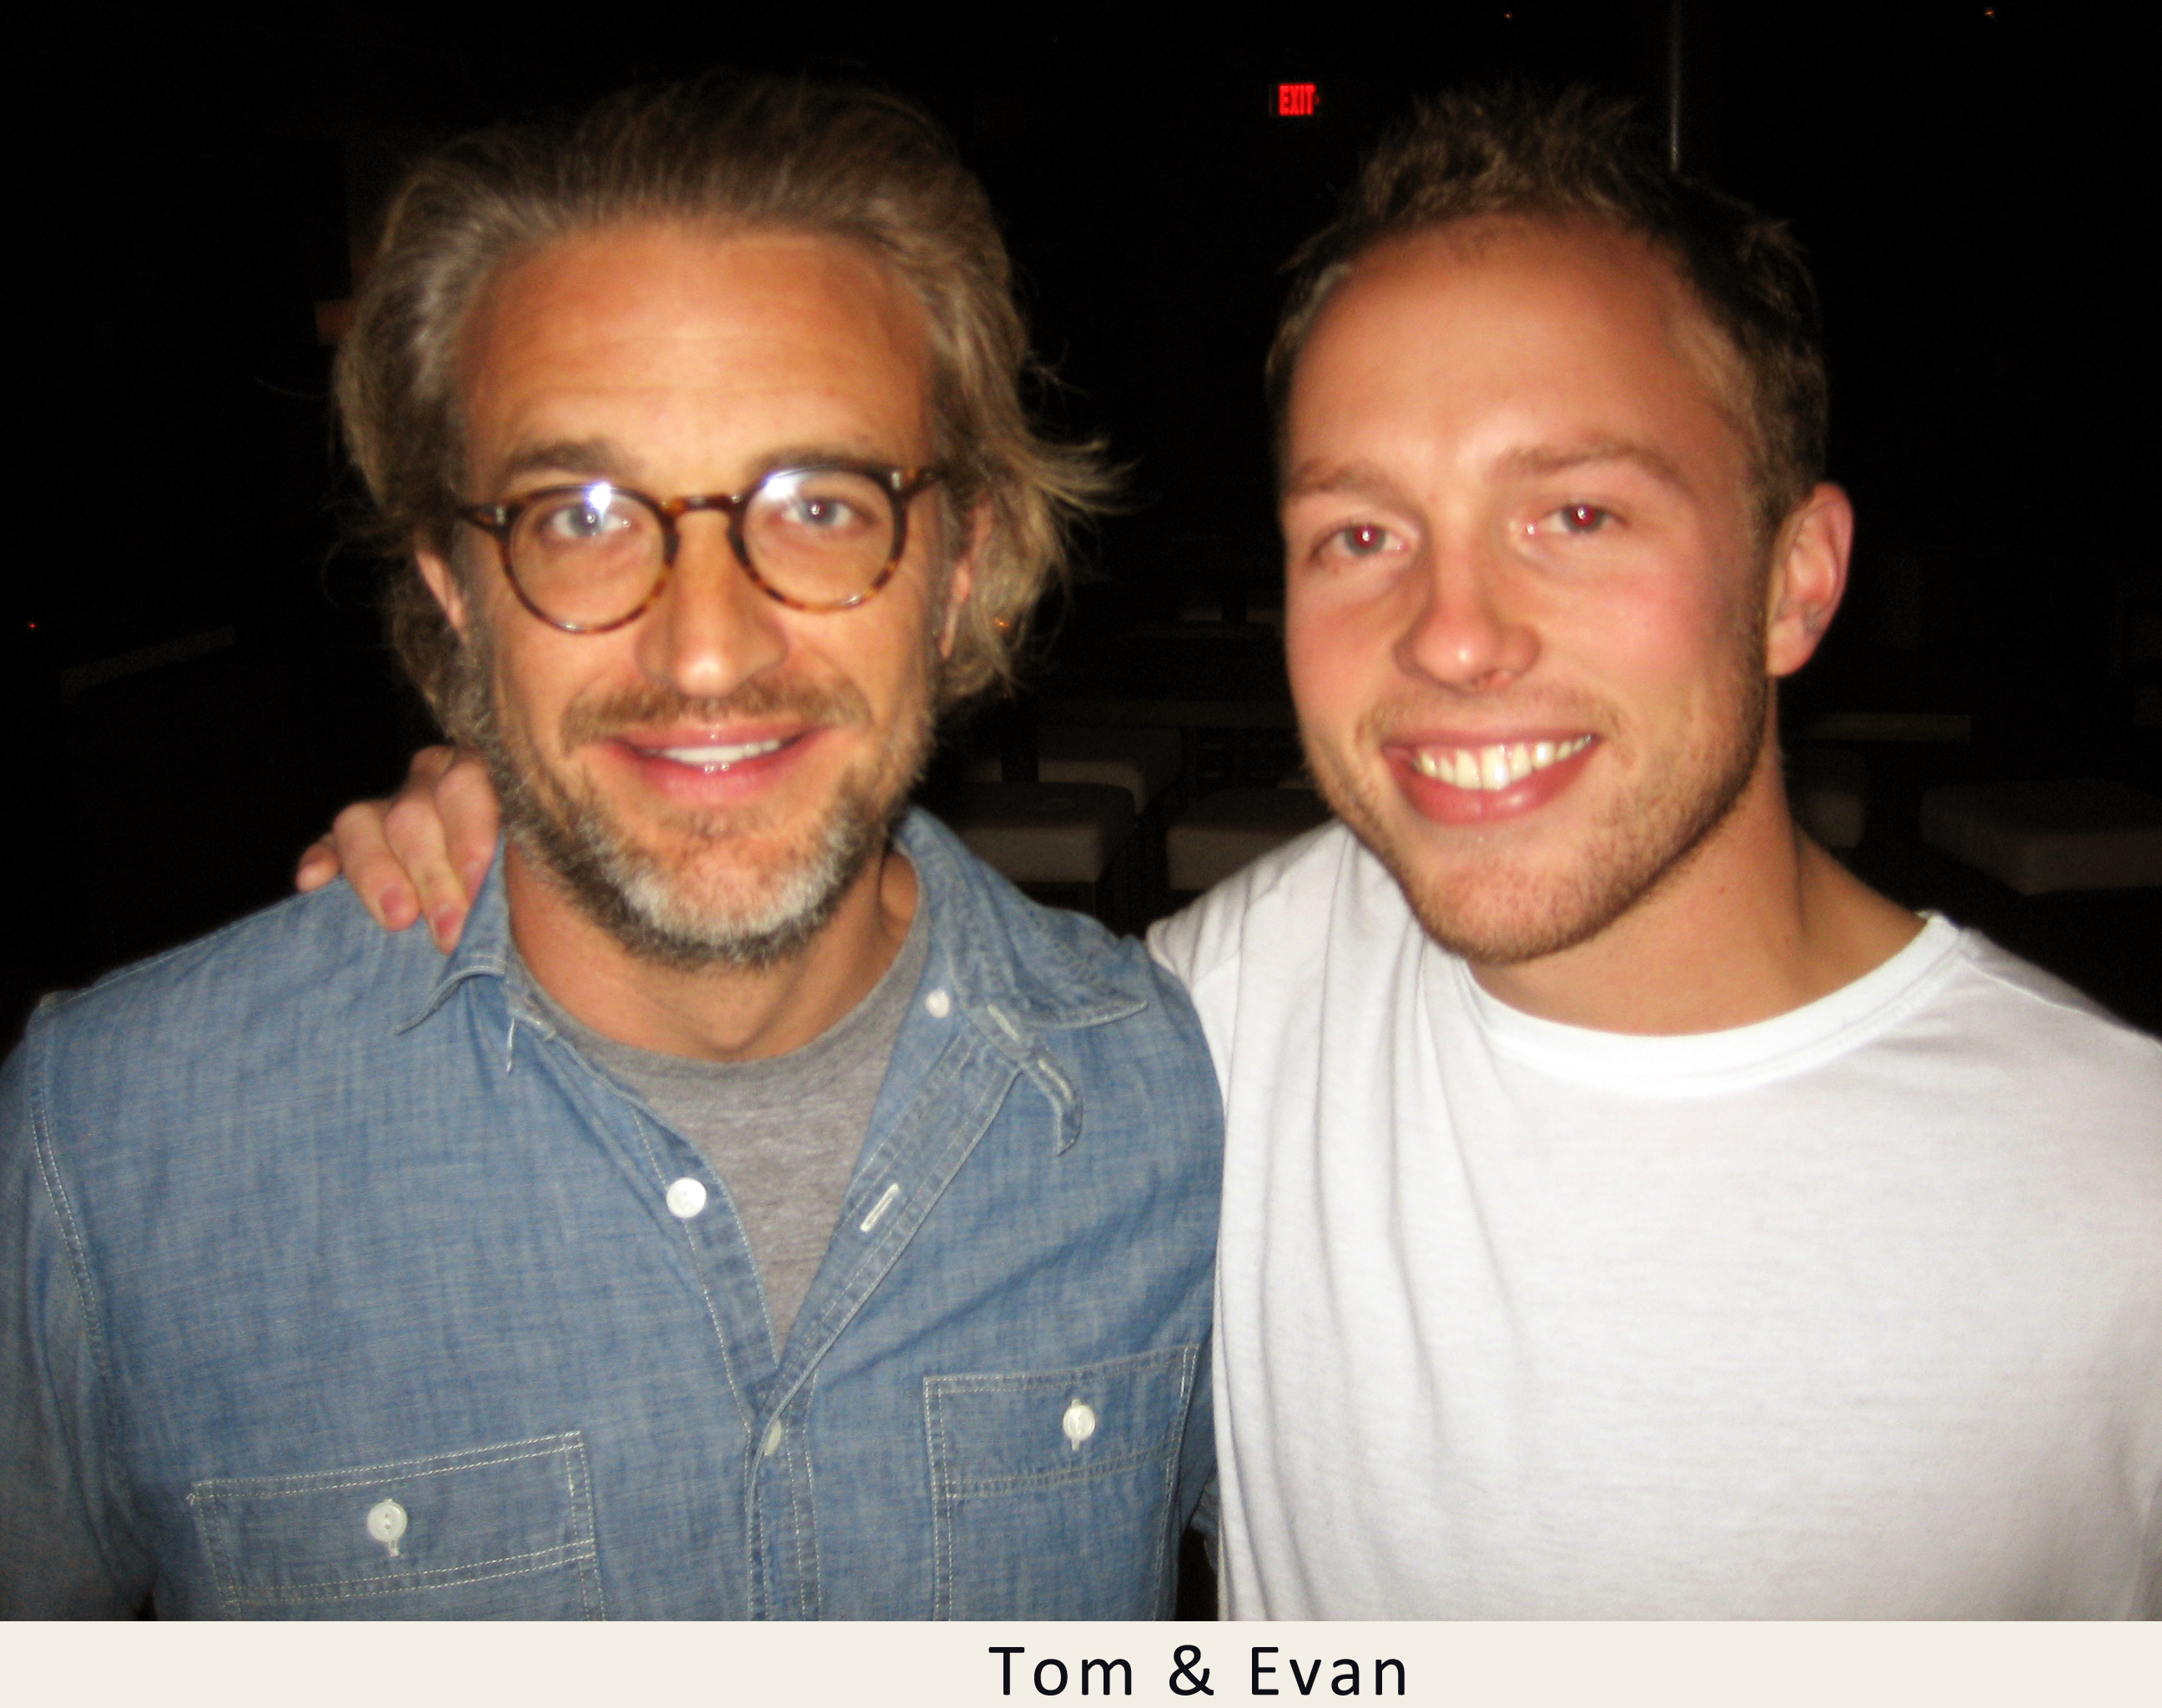 Tom and Evan